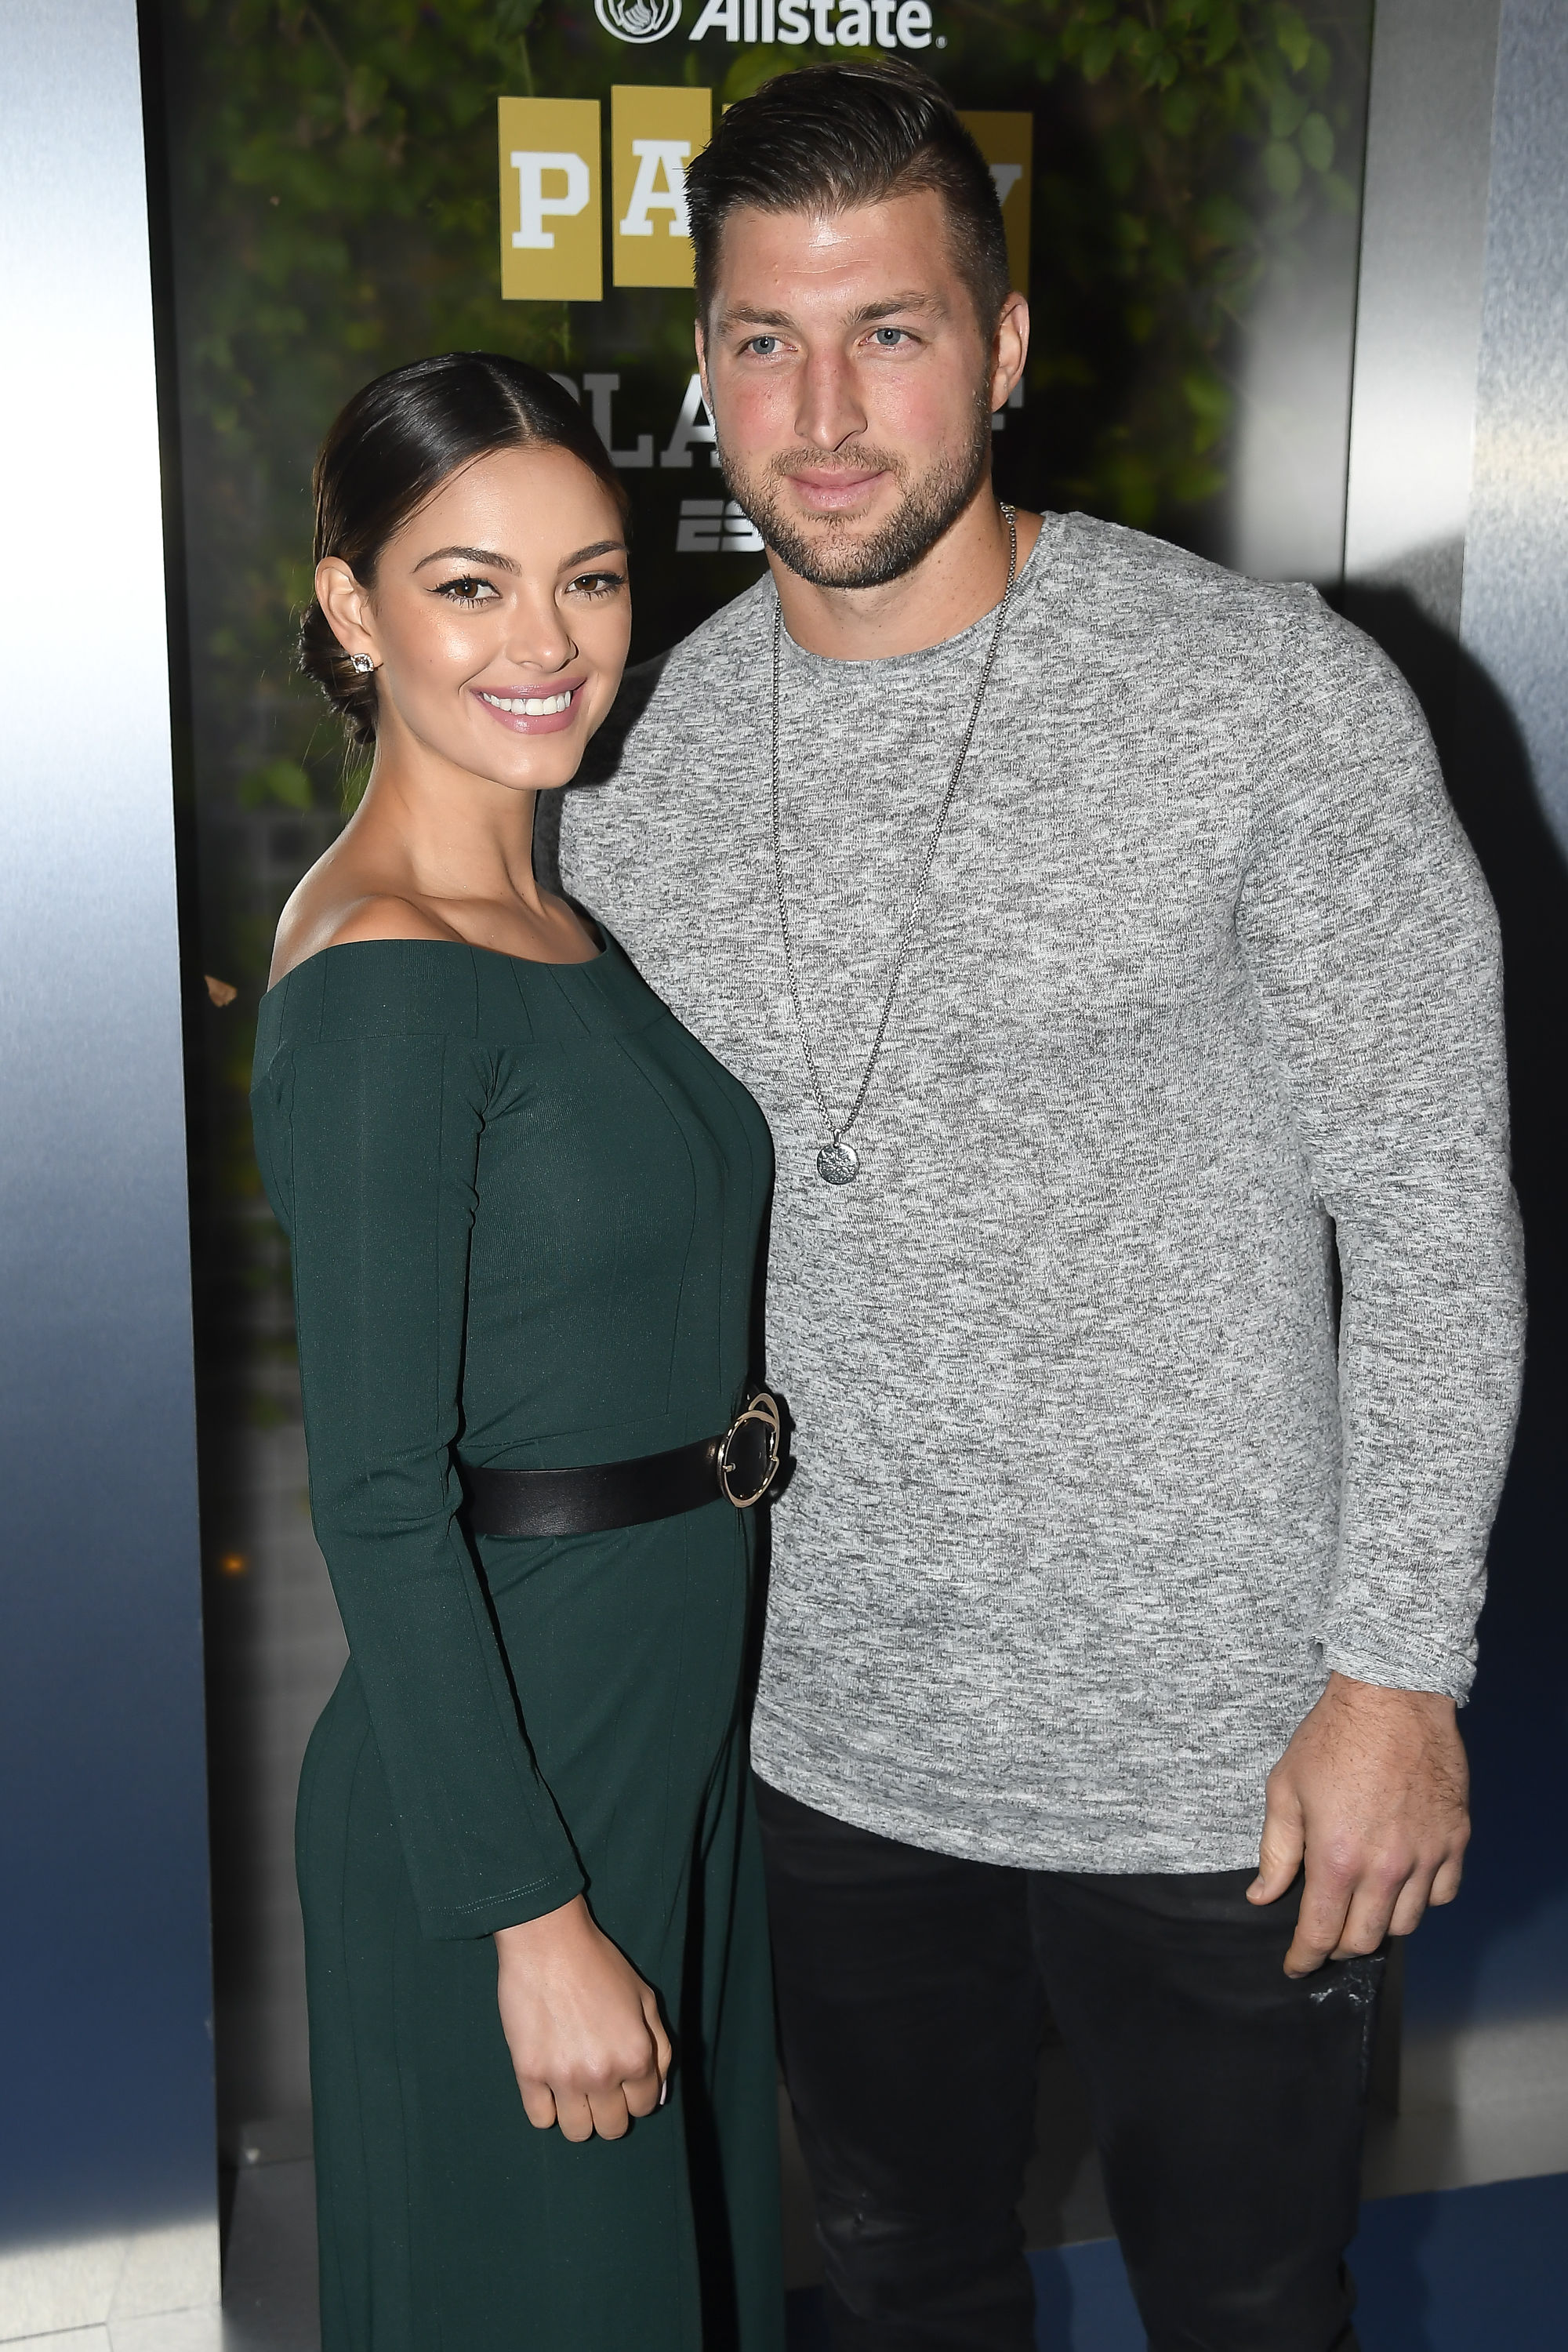 Tim Tebow and Fiancé Demi-Leigh Nel-Peters Want Your Help Coming up With a Wedding Hashtag